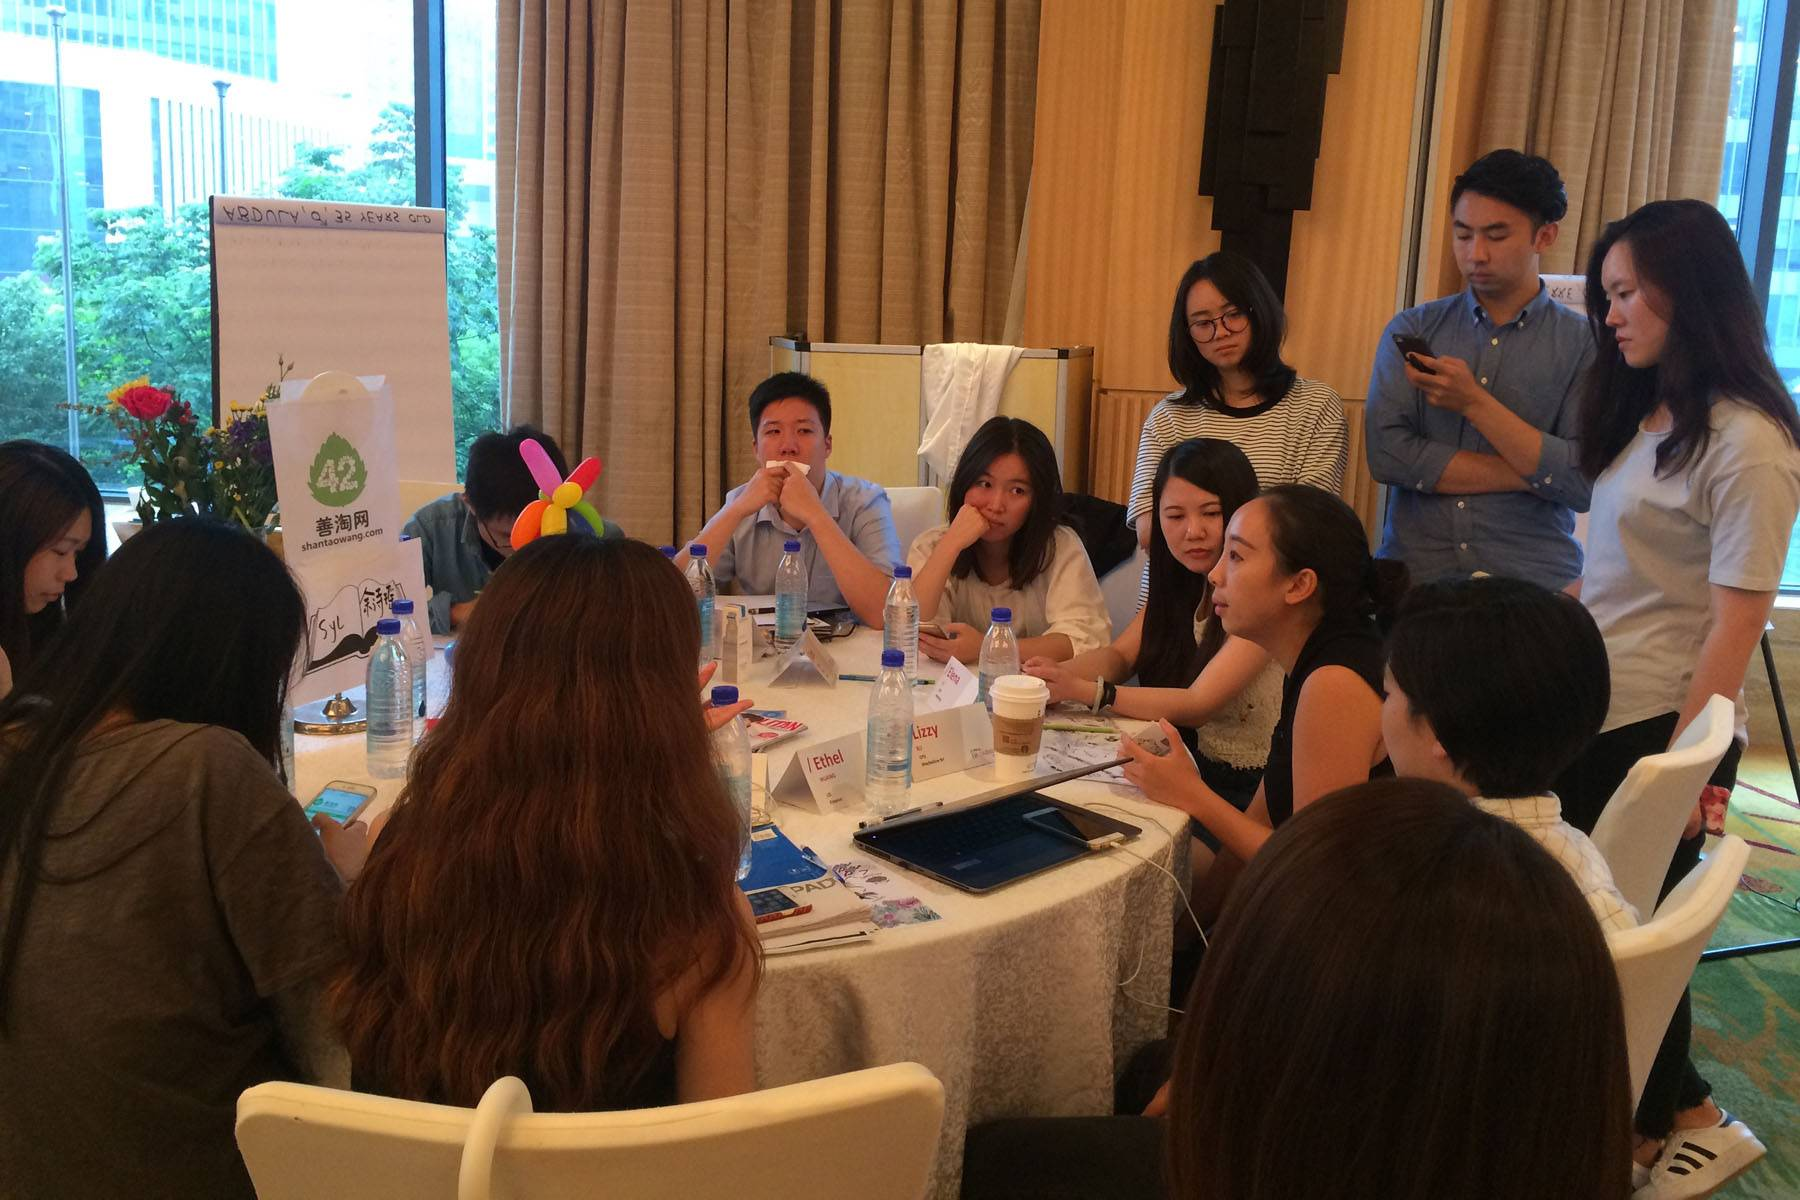 l oreal management trainee program diversity inclusion workshop interaction social enterprise